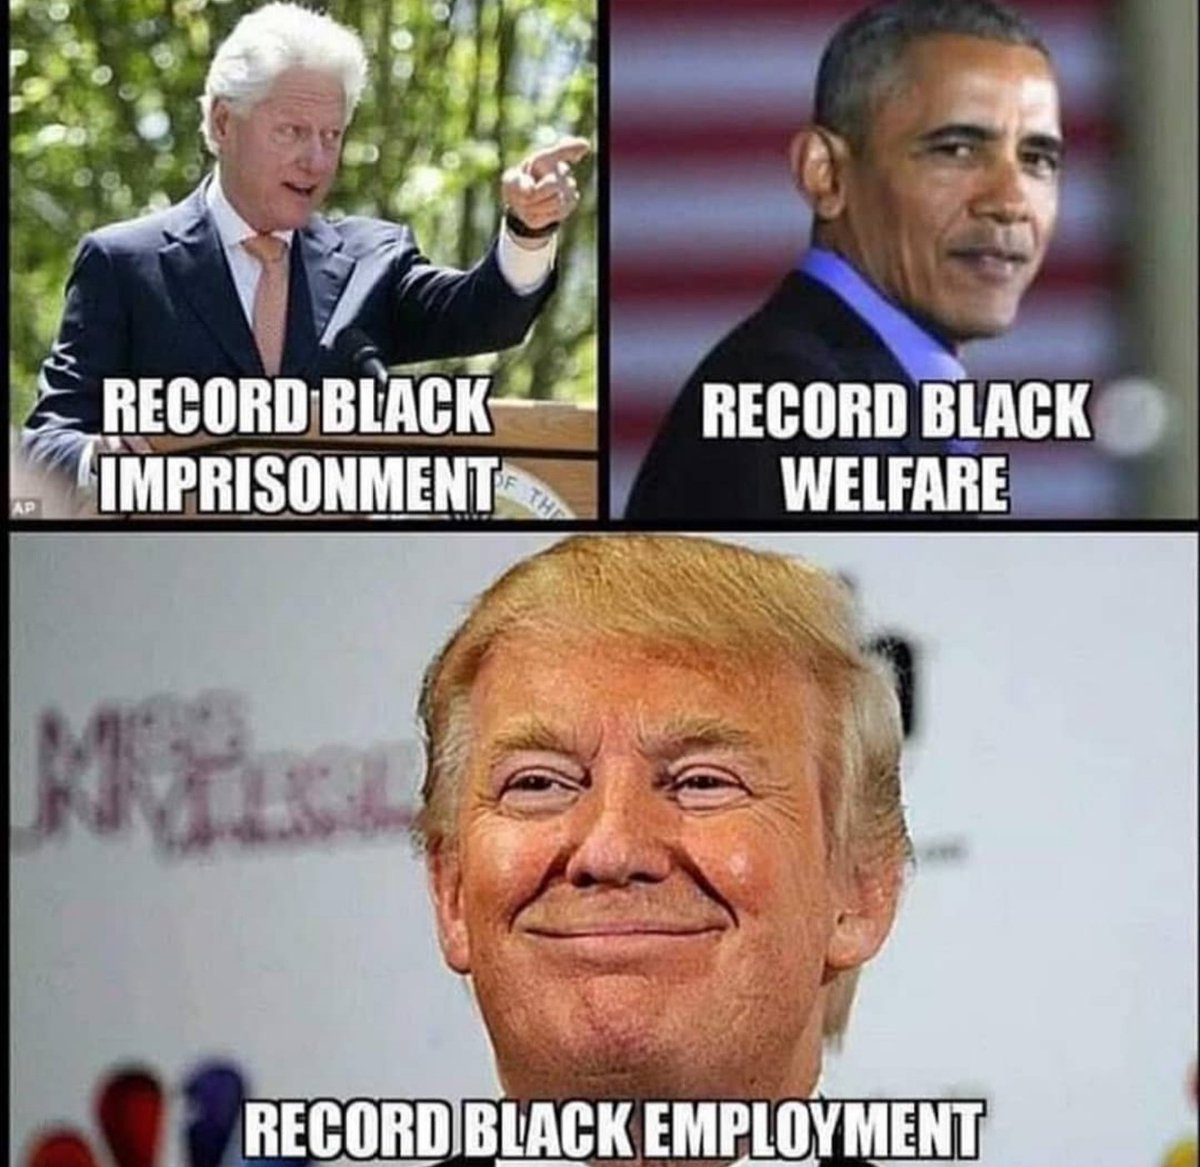 If liberals had half a brain they would vote for Trump based on this alone!